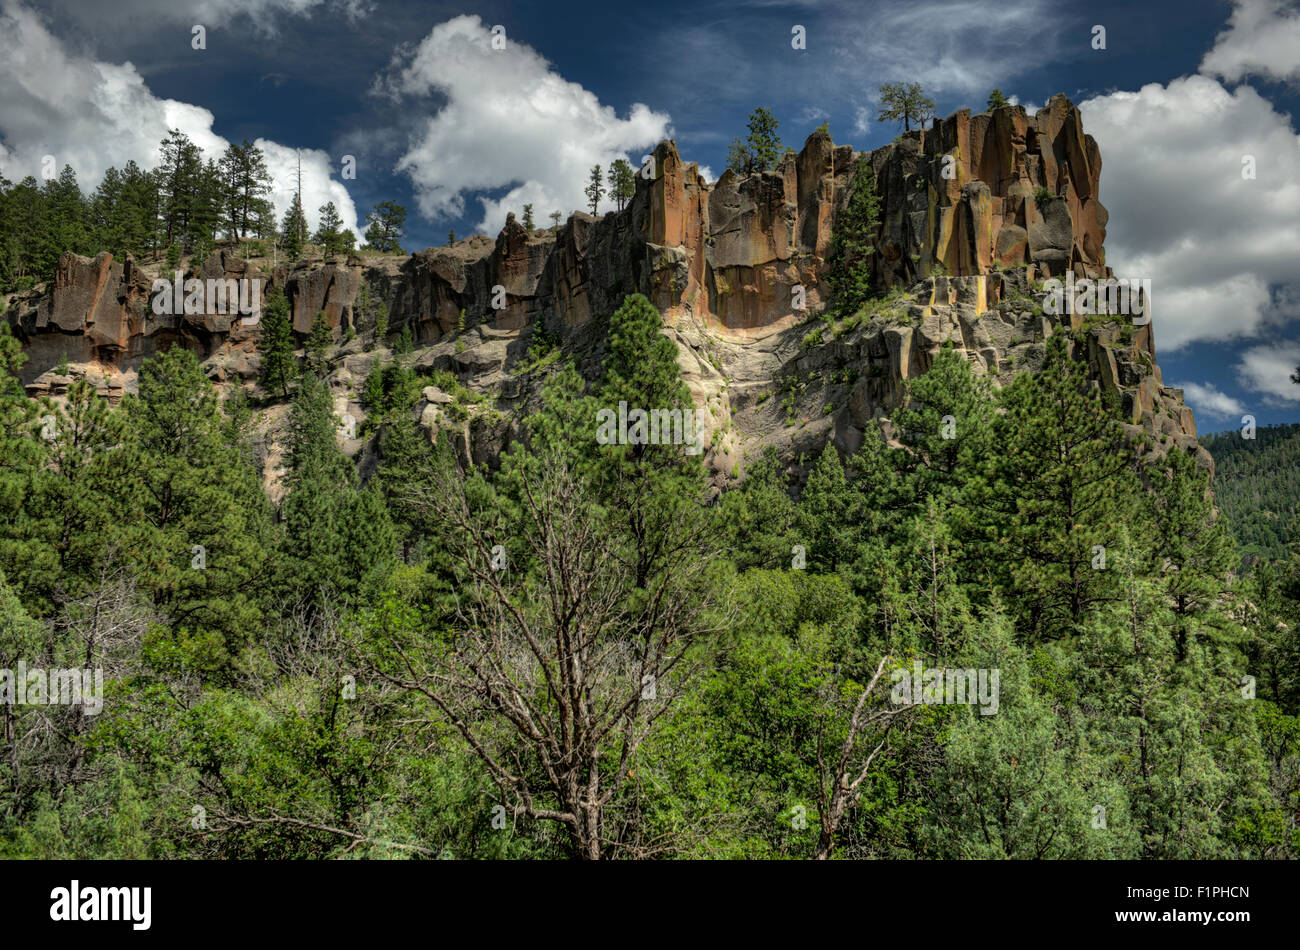 Battleship Rock, in the Jemez Mountains of northern New Mexico. - Stock Image